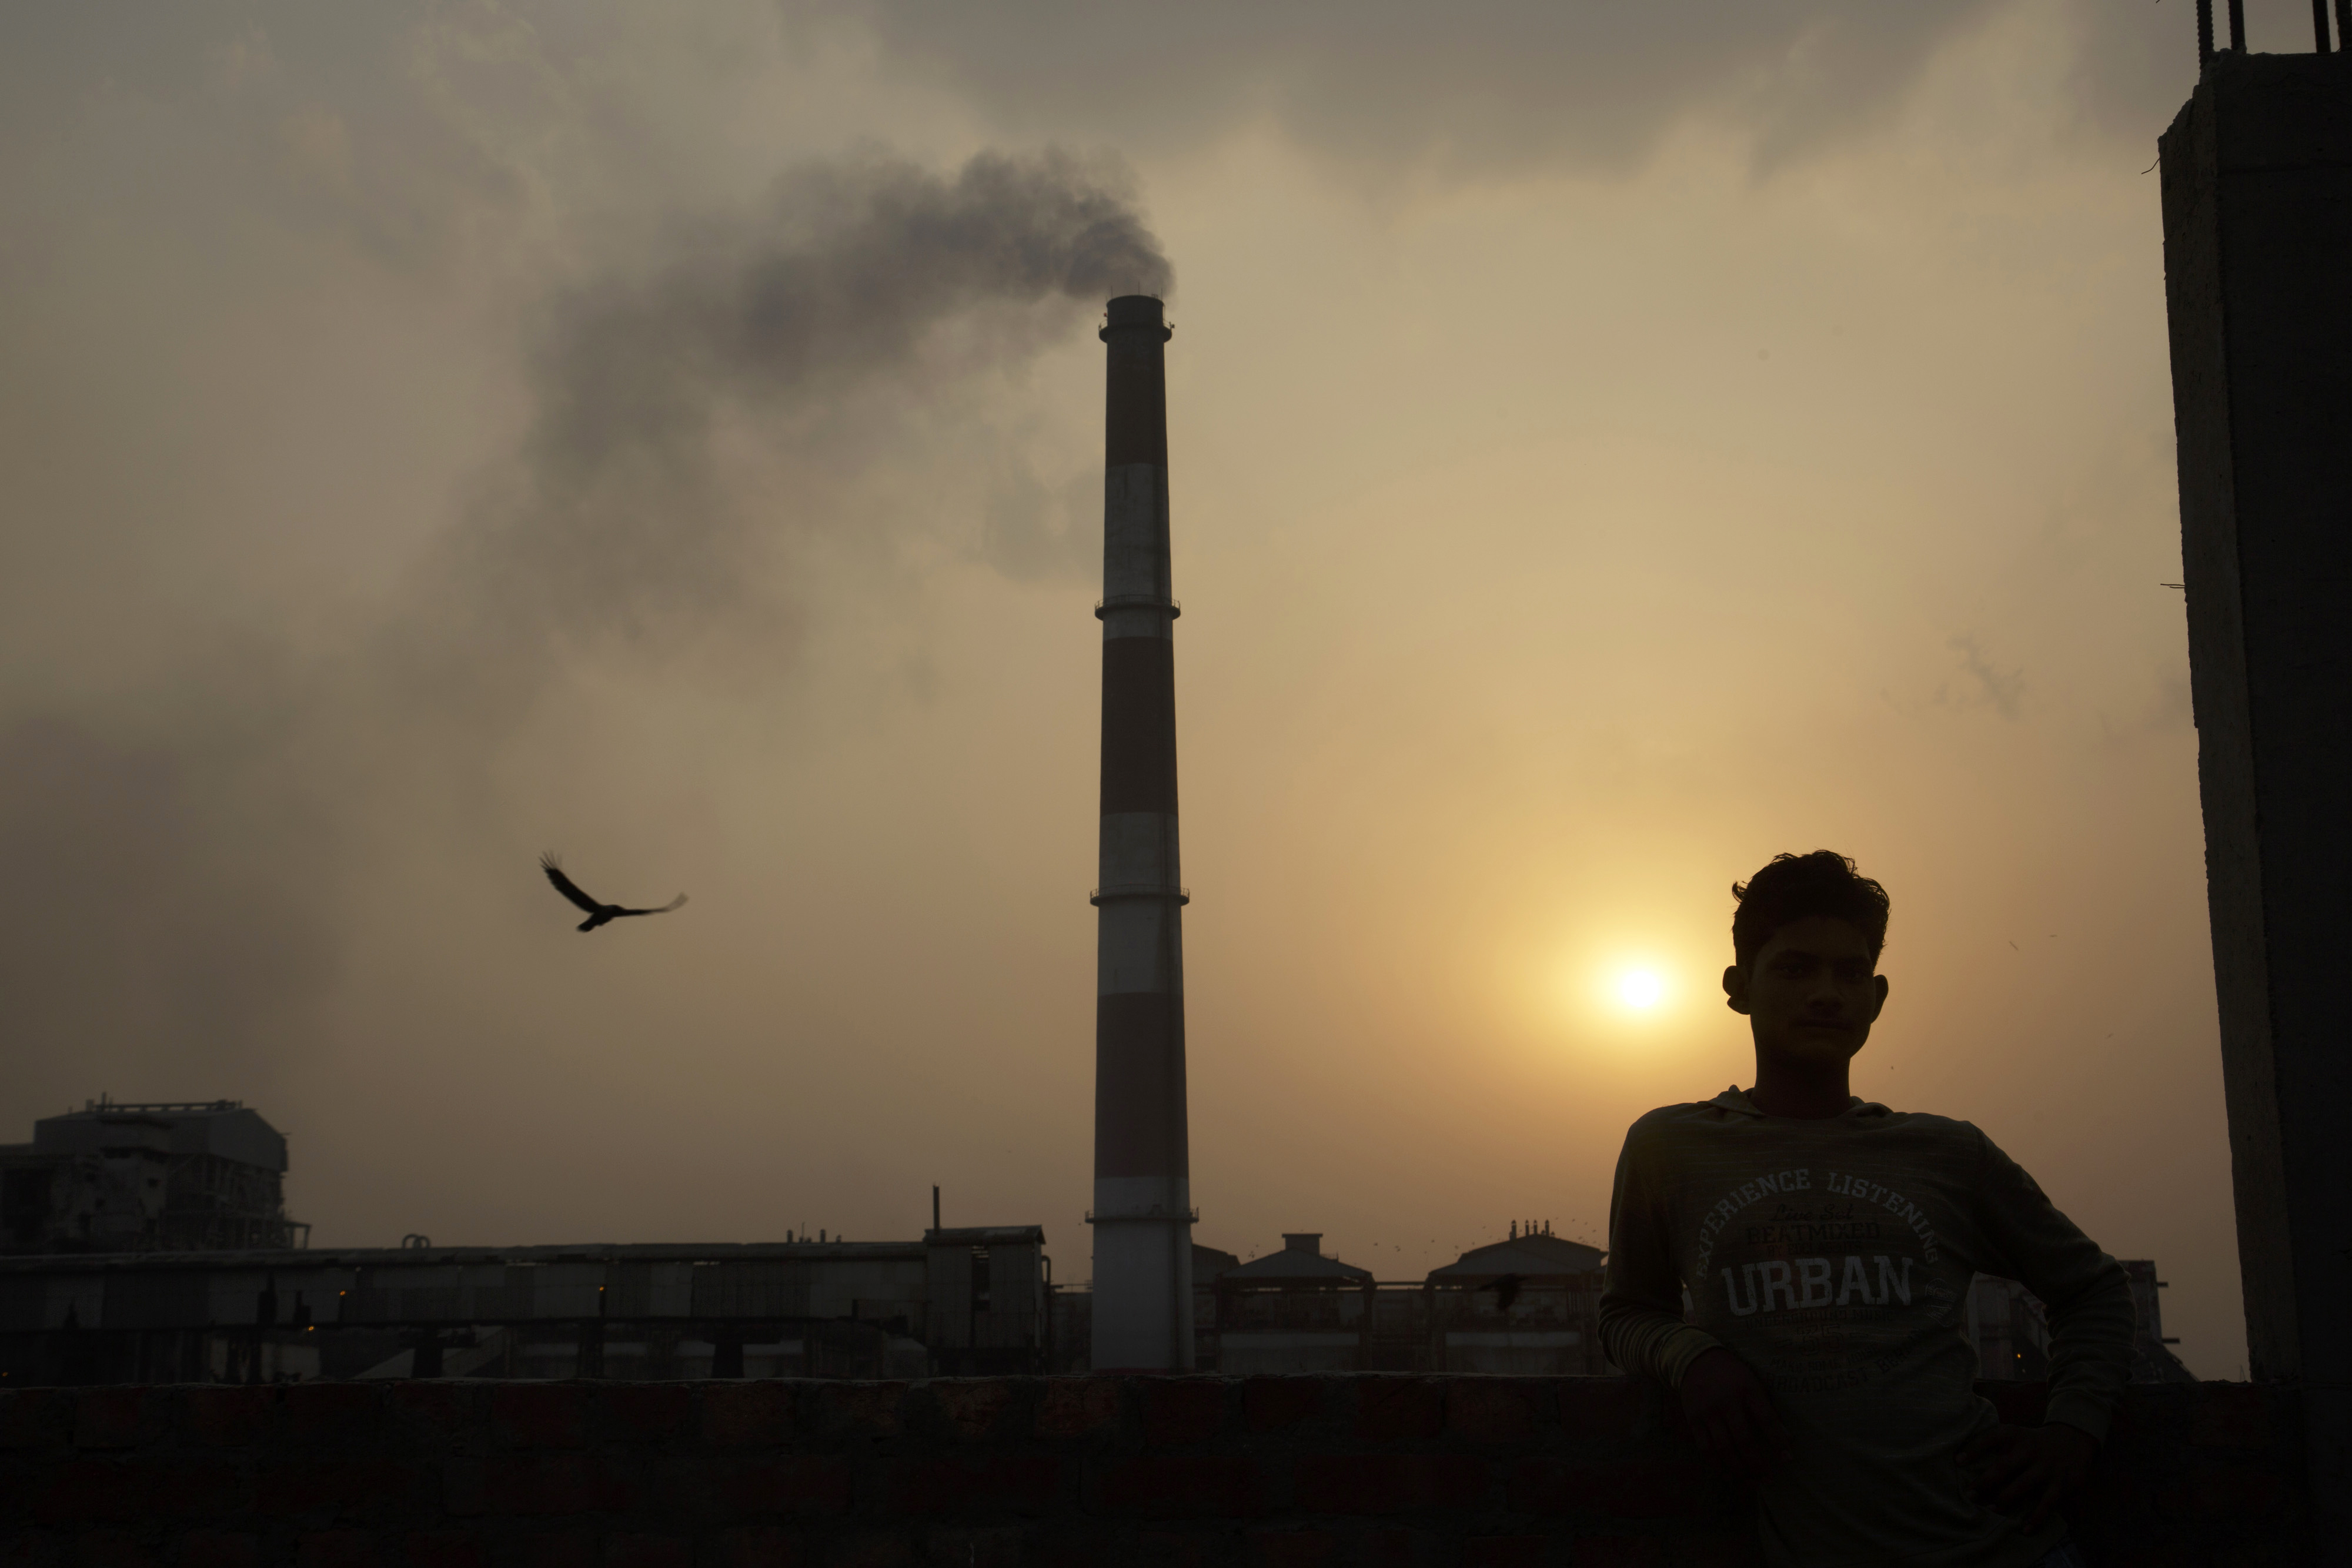 Emissions billow from smokestacks at the NTPC Ltd. Badarpur coal-fired power plant as the sun sets in Badarpur, Delhi, India, on Tuesday, April 28, 2015.